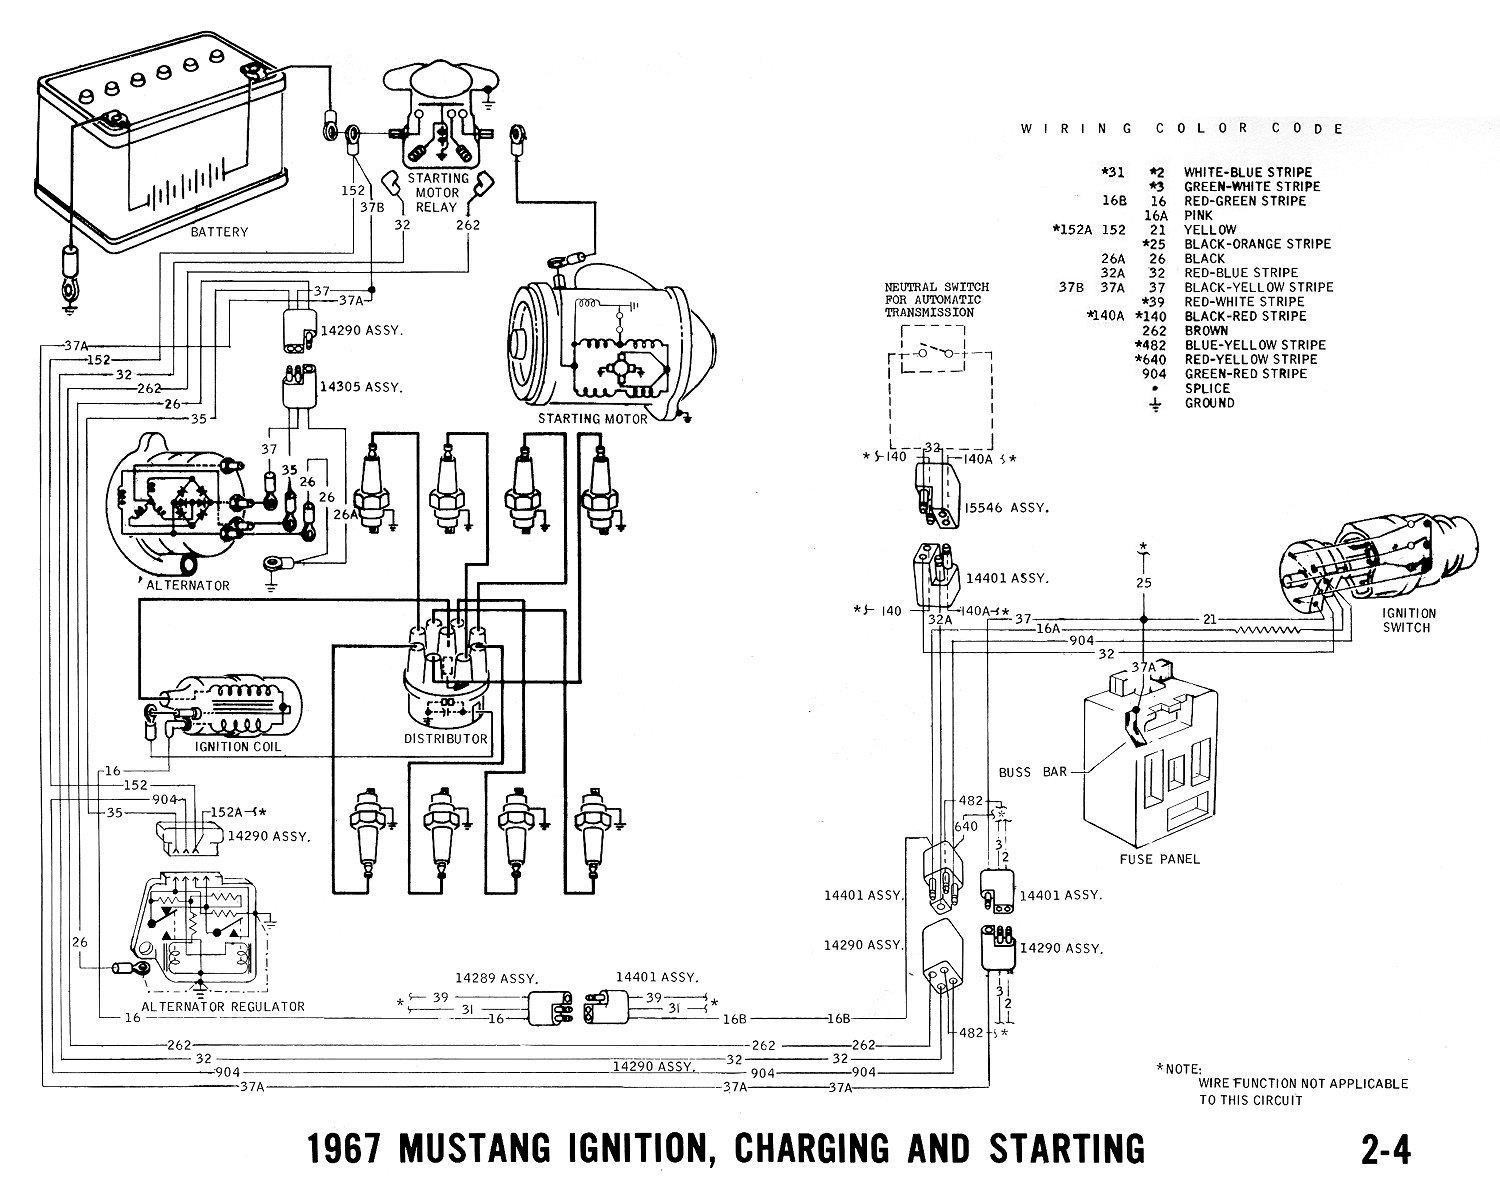 1967 f100 alternator wiring diagram circuit connection diagram \u2022  1966 ford mustang alternator wiring diagram moreover 1977 ford f 250 rh rkstartup co